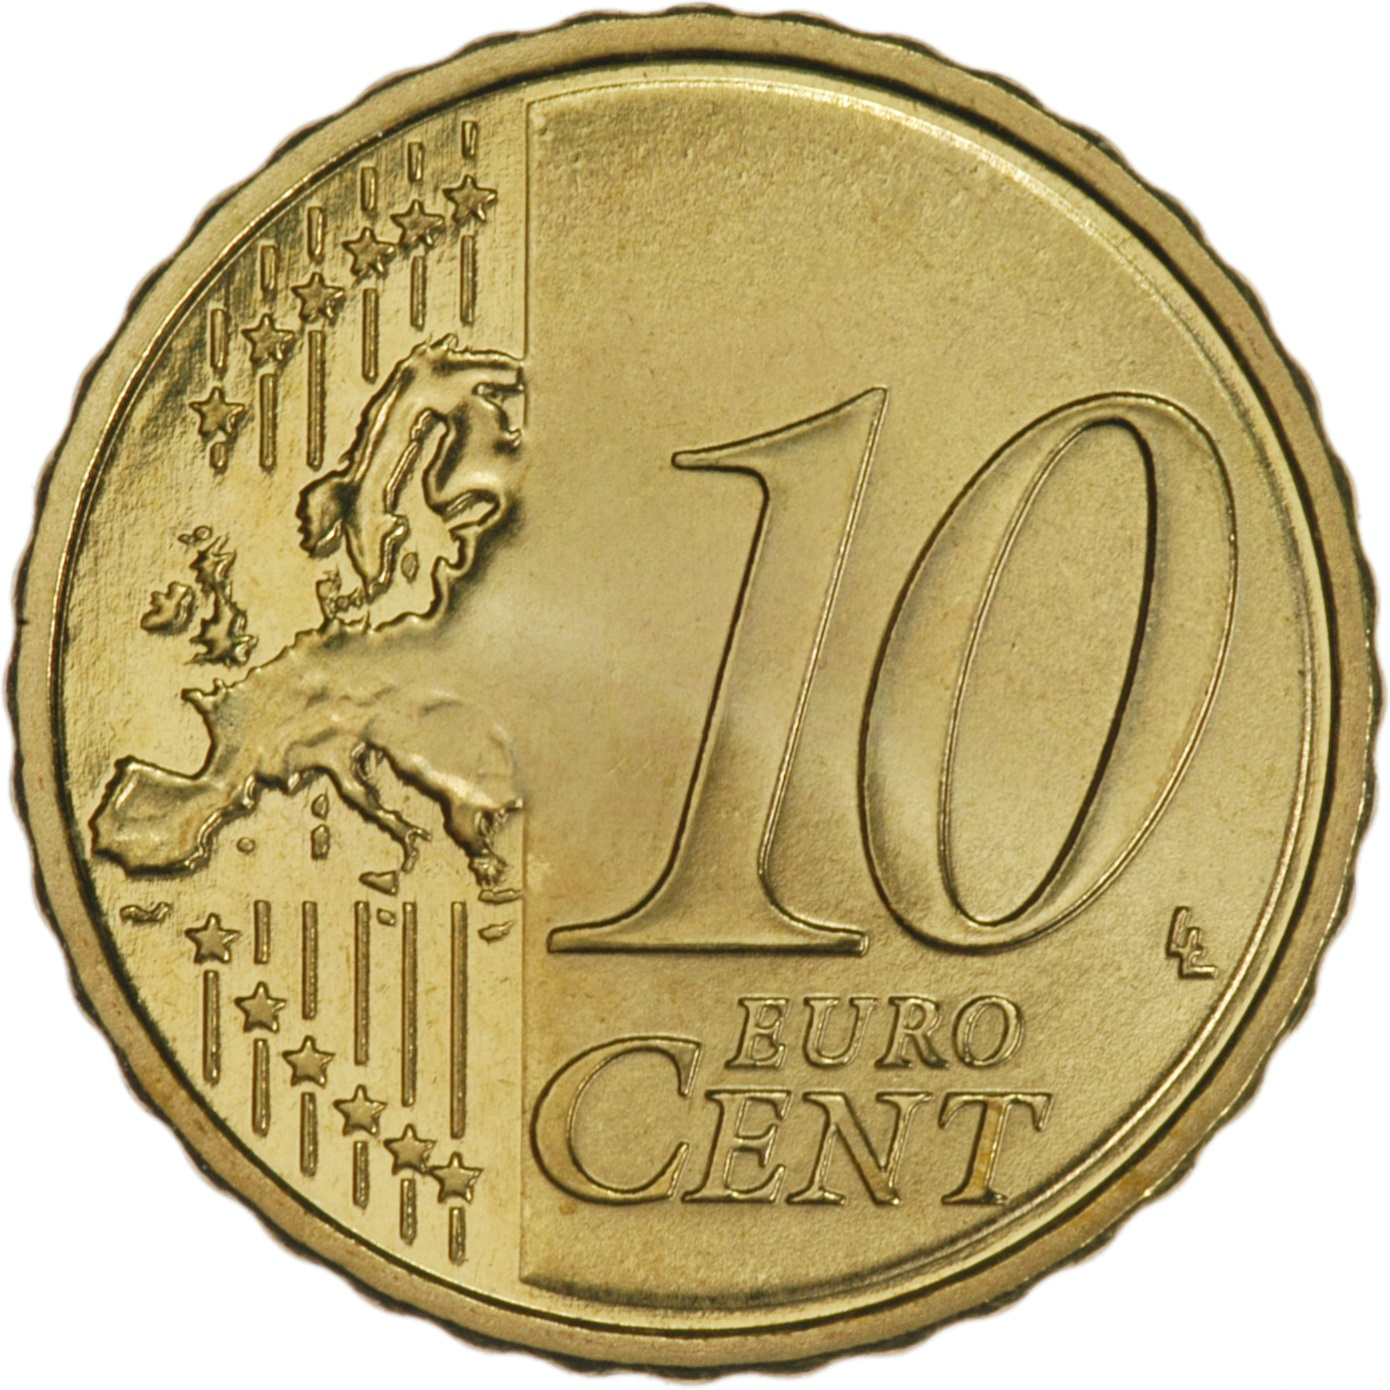 Euro coin pictures and specifications.